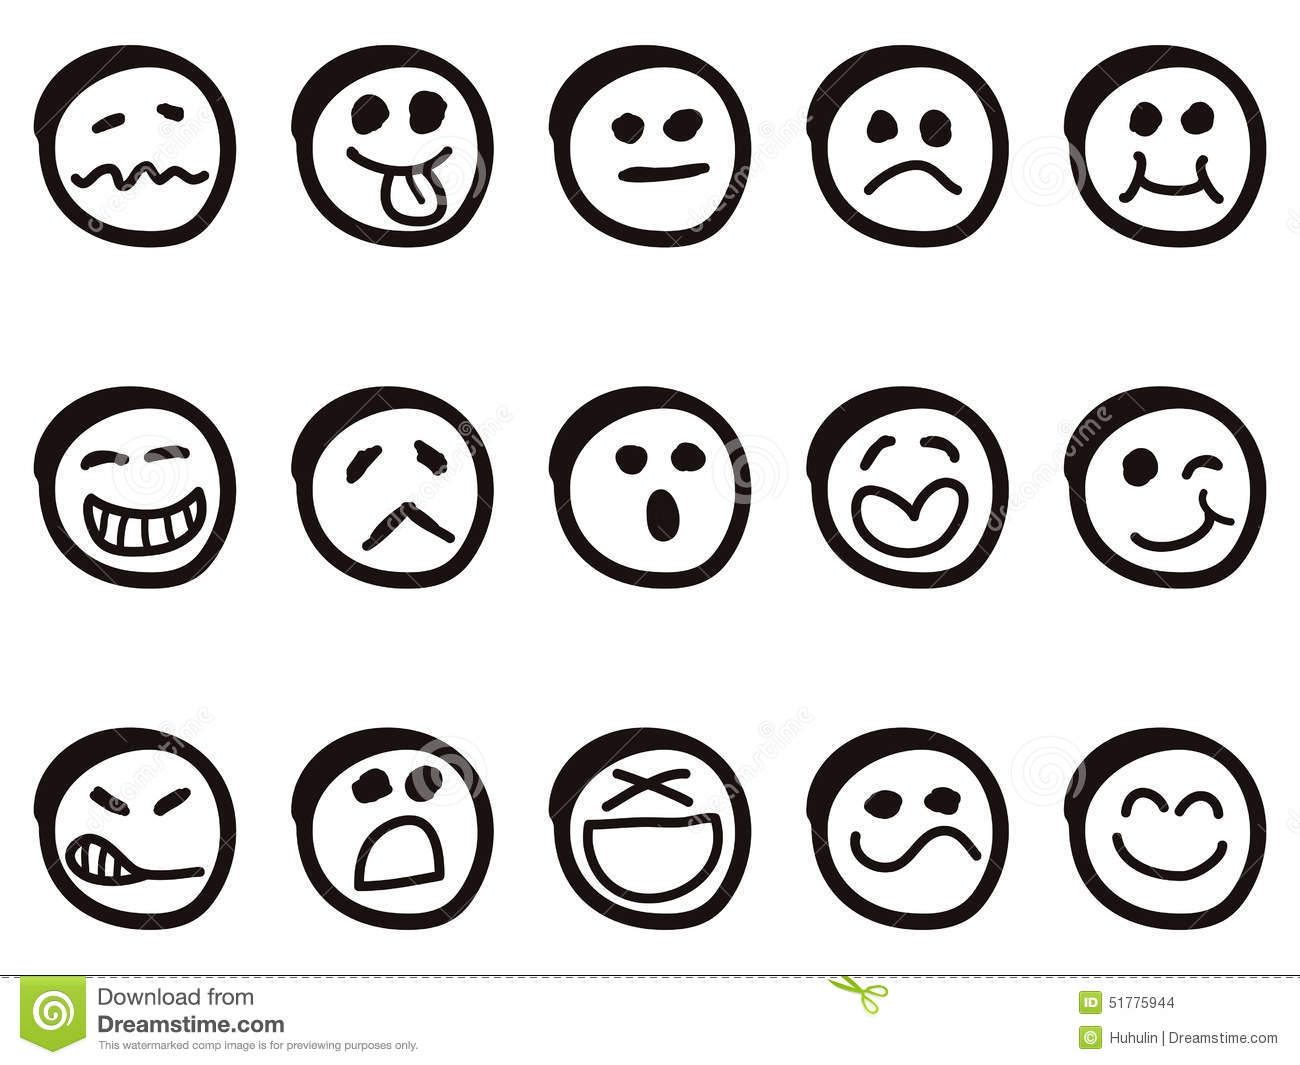 Doodle Cartoon Smiley Faces Stock Vector - Image: 51775944